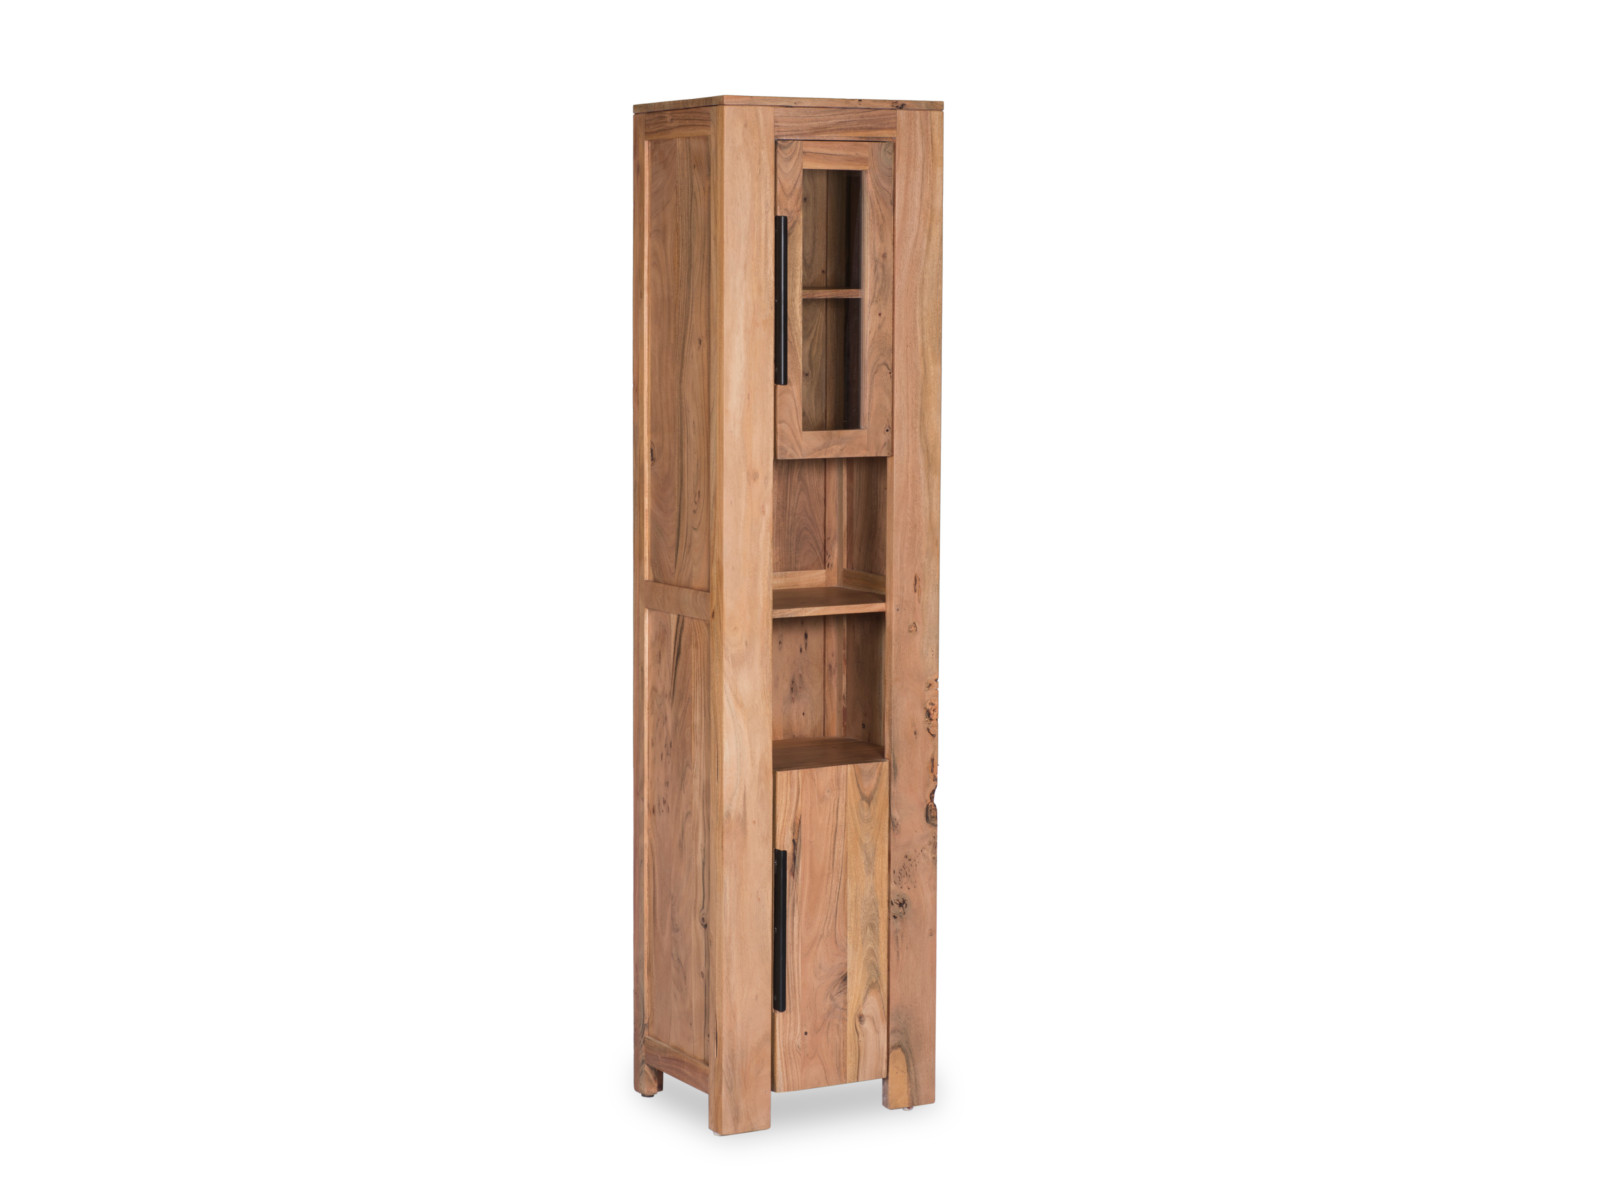 badm bel set auckland 6teilig akazie massiv holz badschrank badezimmer schr nke 4251342303328 ebay. Black Bedroom Furniture Sets. Home Design Ideas